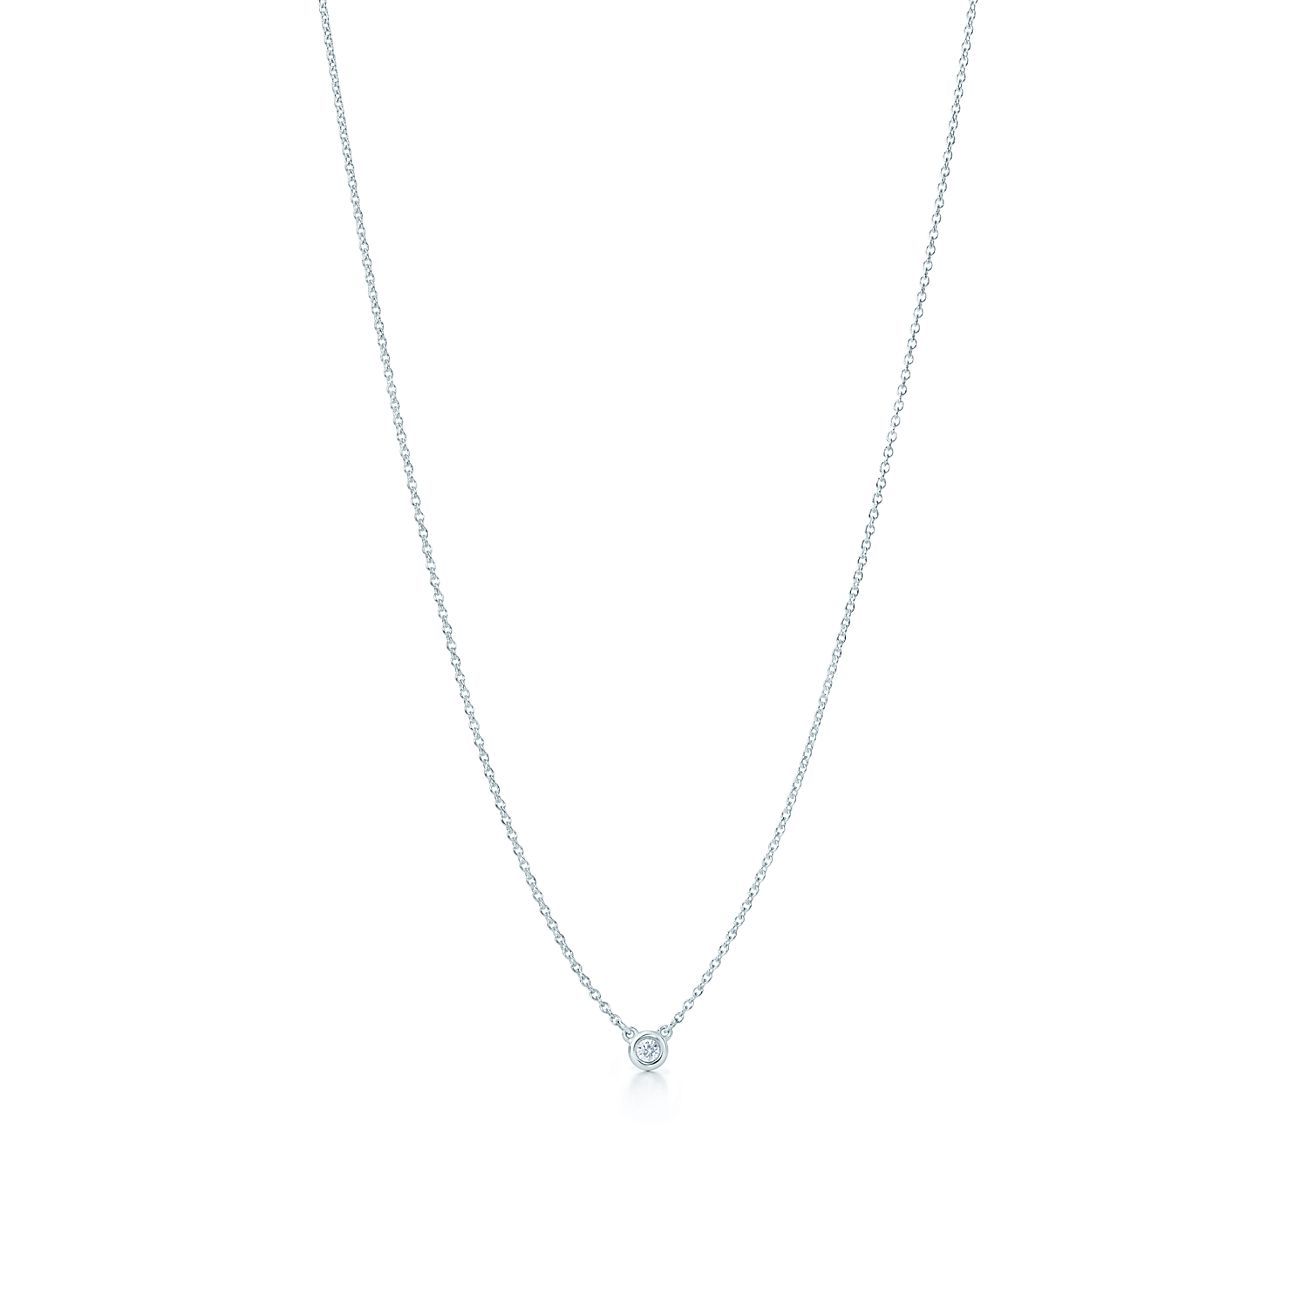 Diamond pendant necklace in sterling silver elsa peretti elsa perettidiamonds by the yard pendant mozeypictures Images